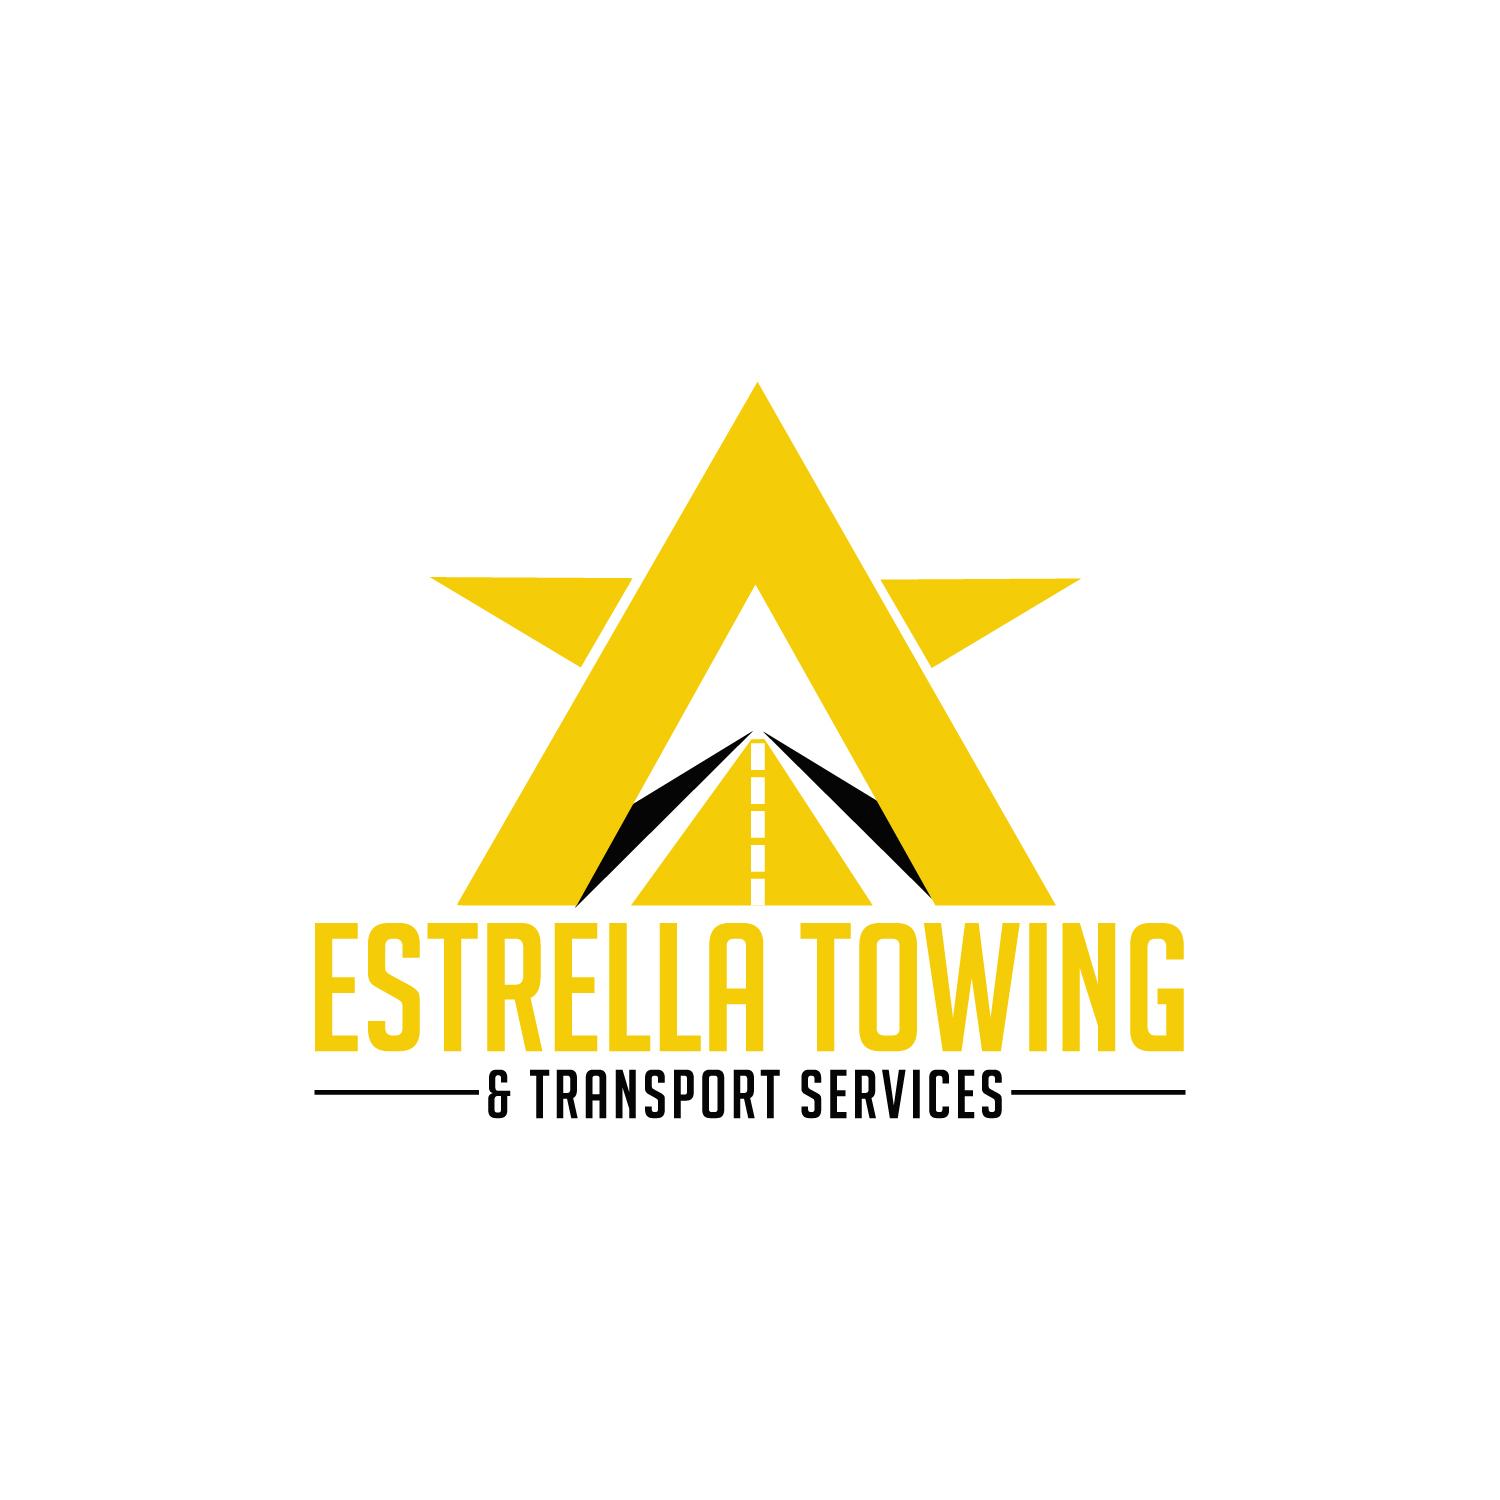 South Beach Towing Company